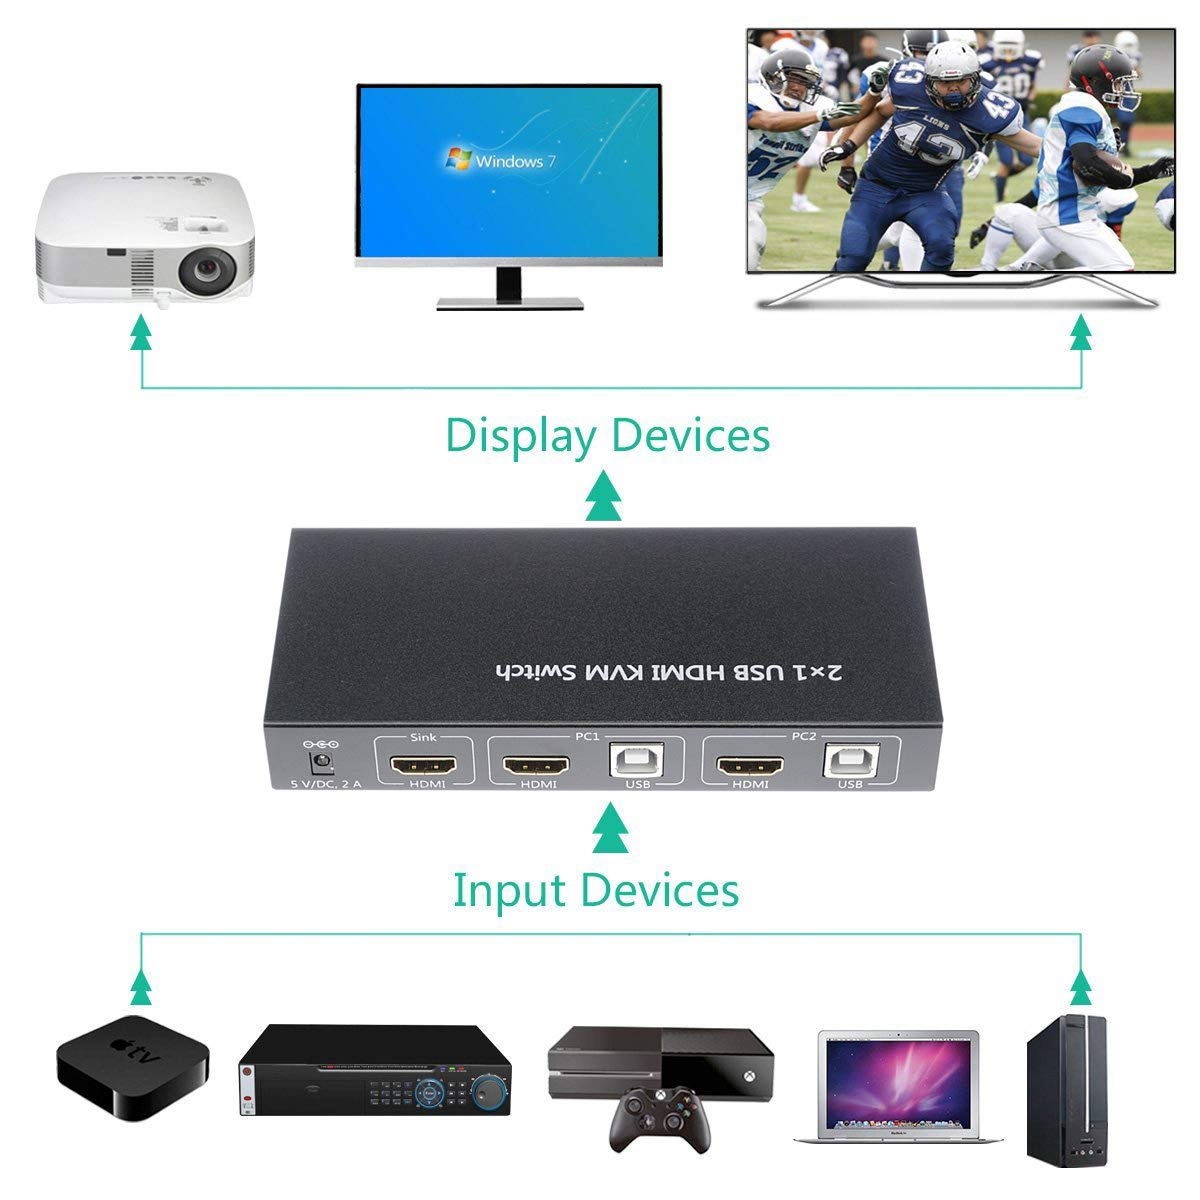 A ADWITS 2-Port 2-IN-1-OUT HDMI 4K@30Hz 1080P@60Hz 3D Ultra HD KVM Switch with Audio Switch, MIC, USB 2.0 Hub, UL Certified Safety Power Adapter, Windows Mac OS Linux PC Laptop Compatible by A ADWITS (Image #4)